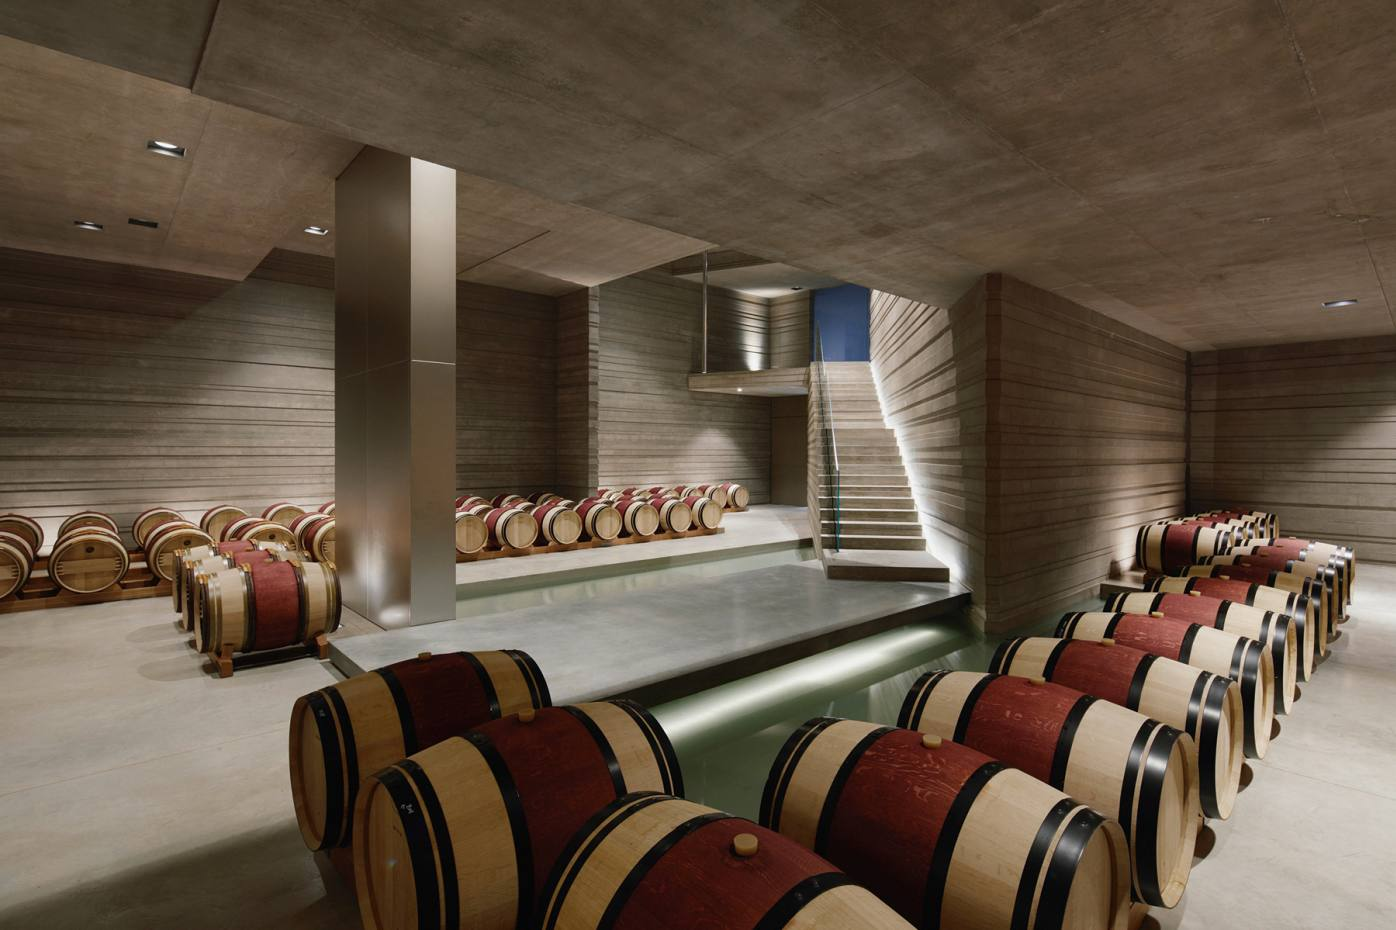 Masseto now vinifies and ages wines at its own premises, rather than neighbouring Ornellaia